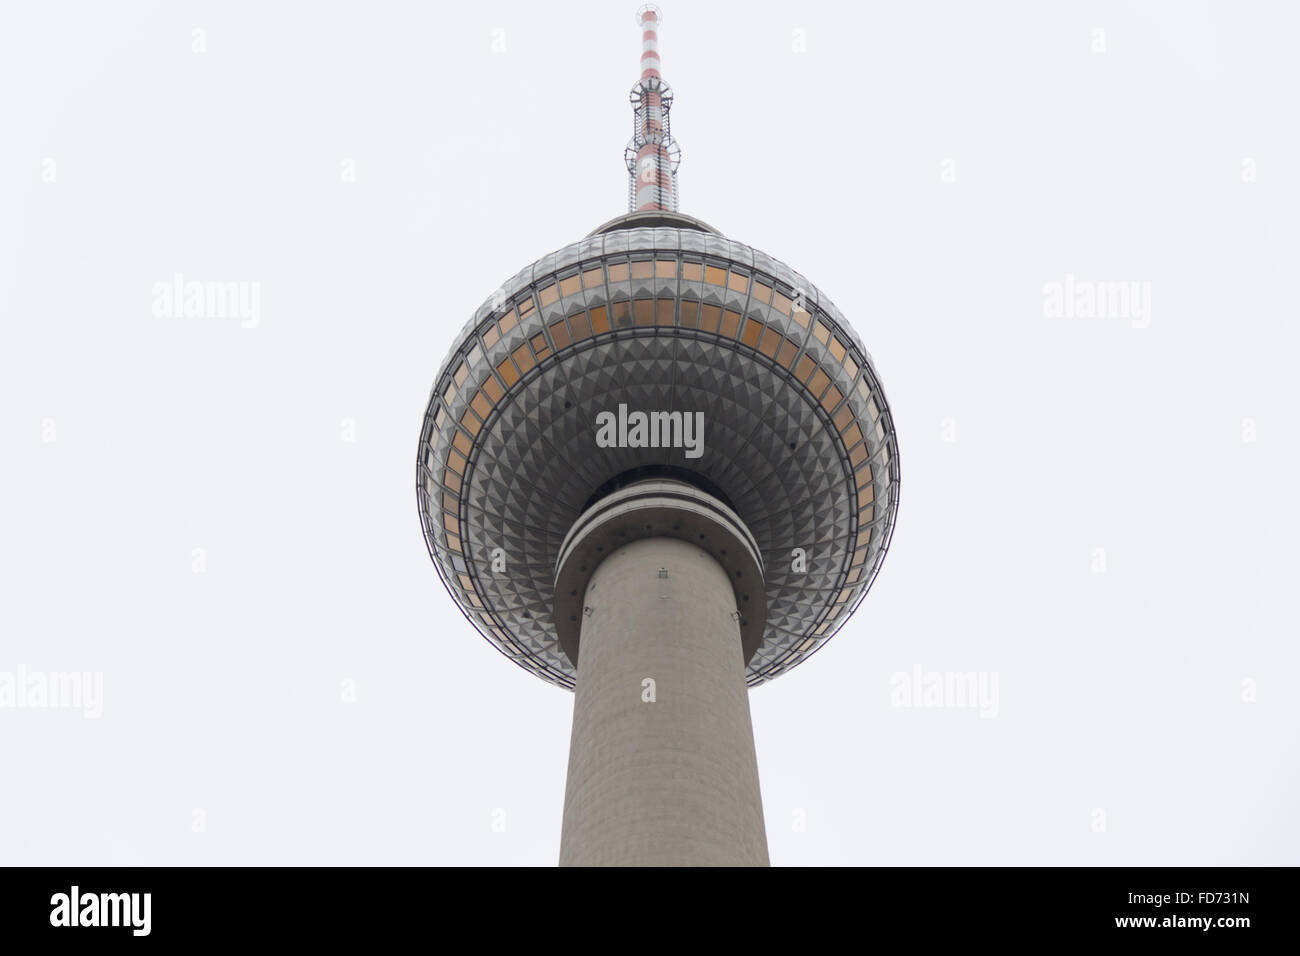 the fernsehturm, berlin tv tower, turret, rook, architecture, architectonics, upbuilding, building, sky, air, blue, - Stock Image